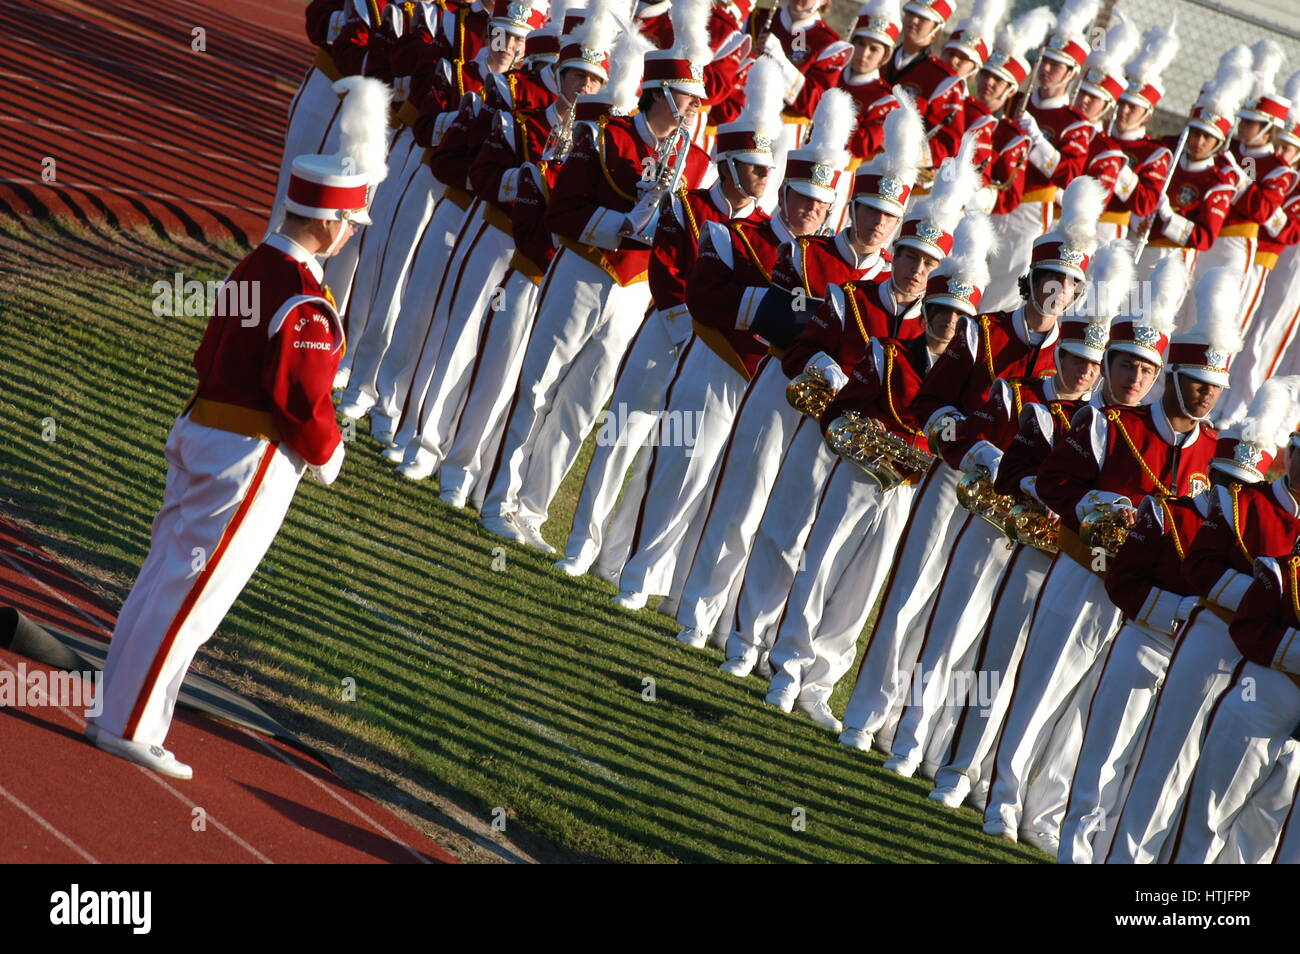 Marching band. - Stock Image